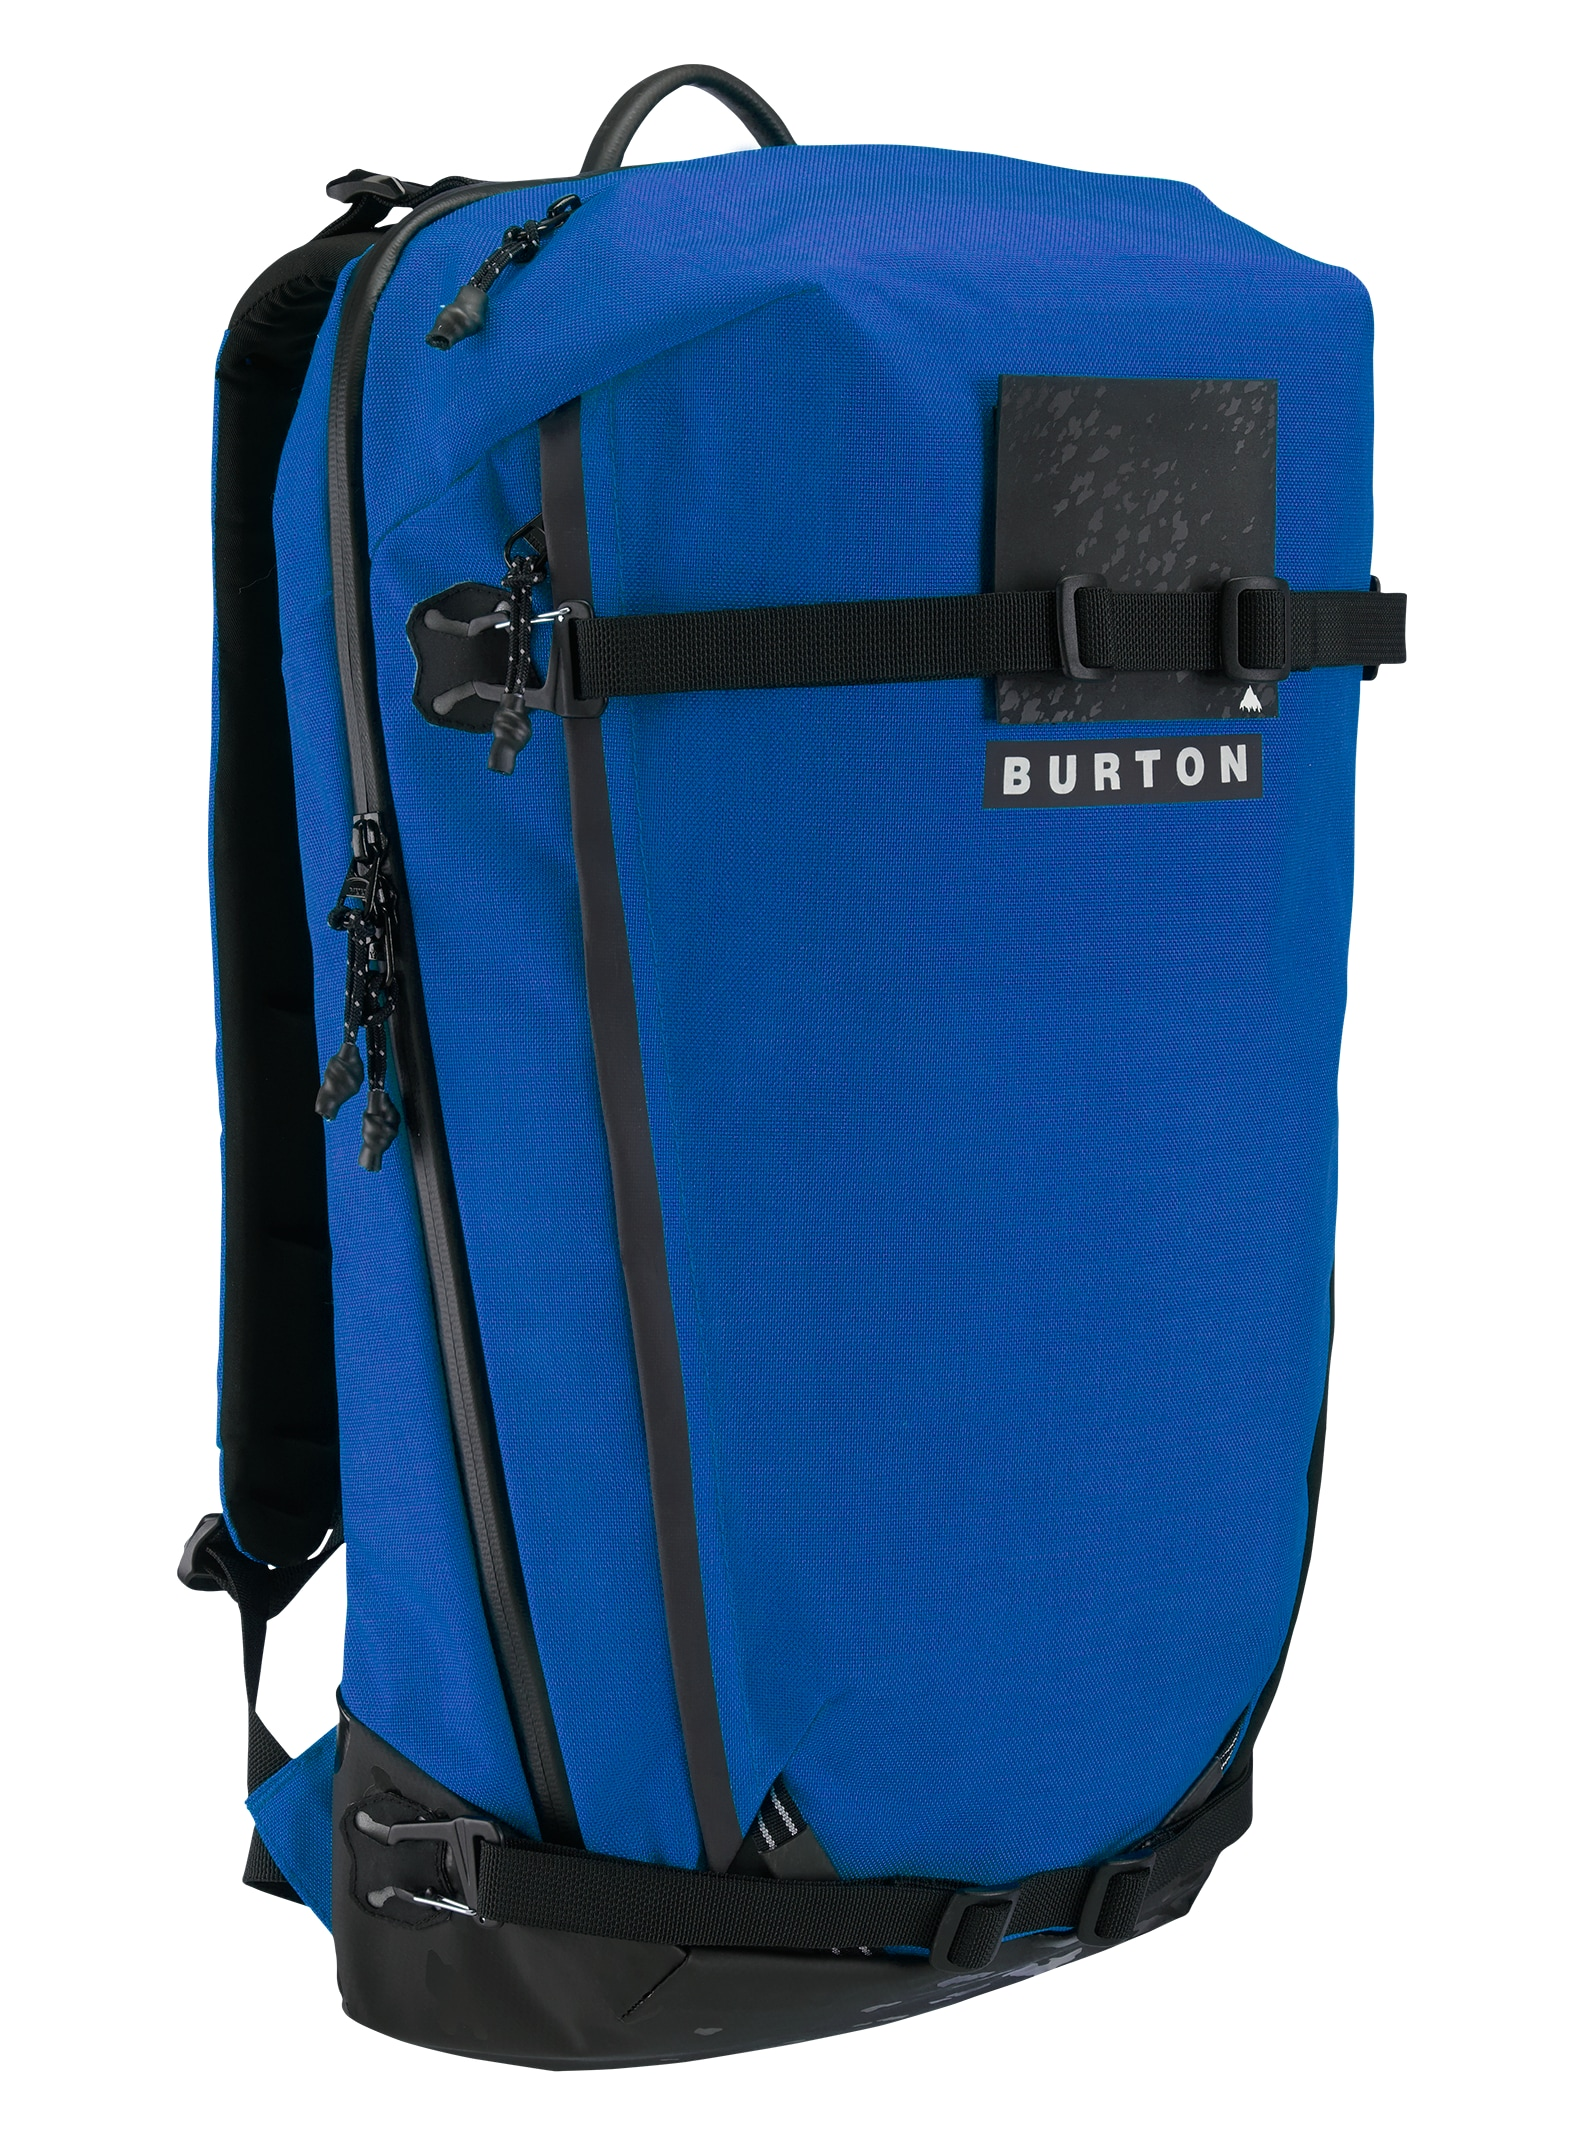 Burton Gorge Backpack shown in Skydiver Heather